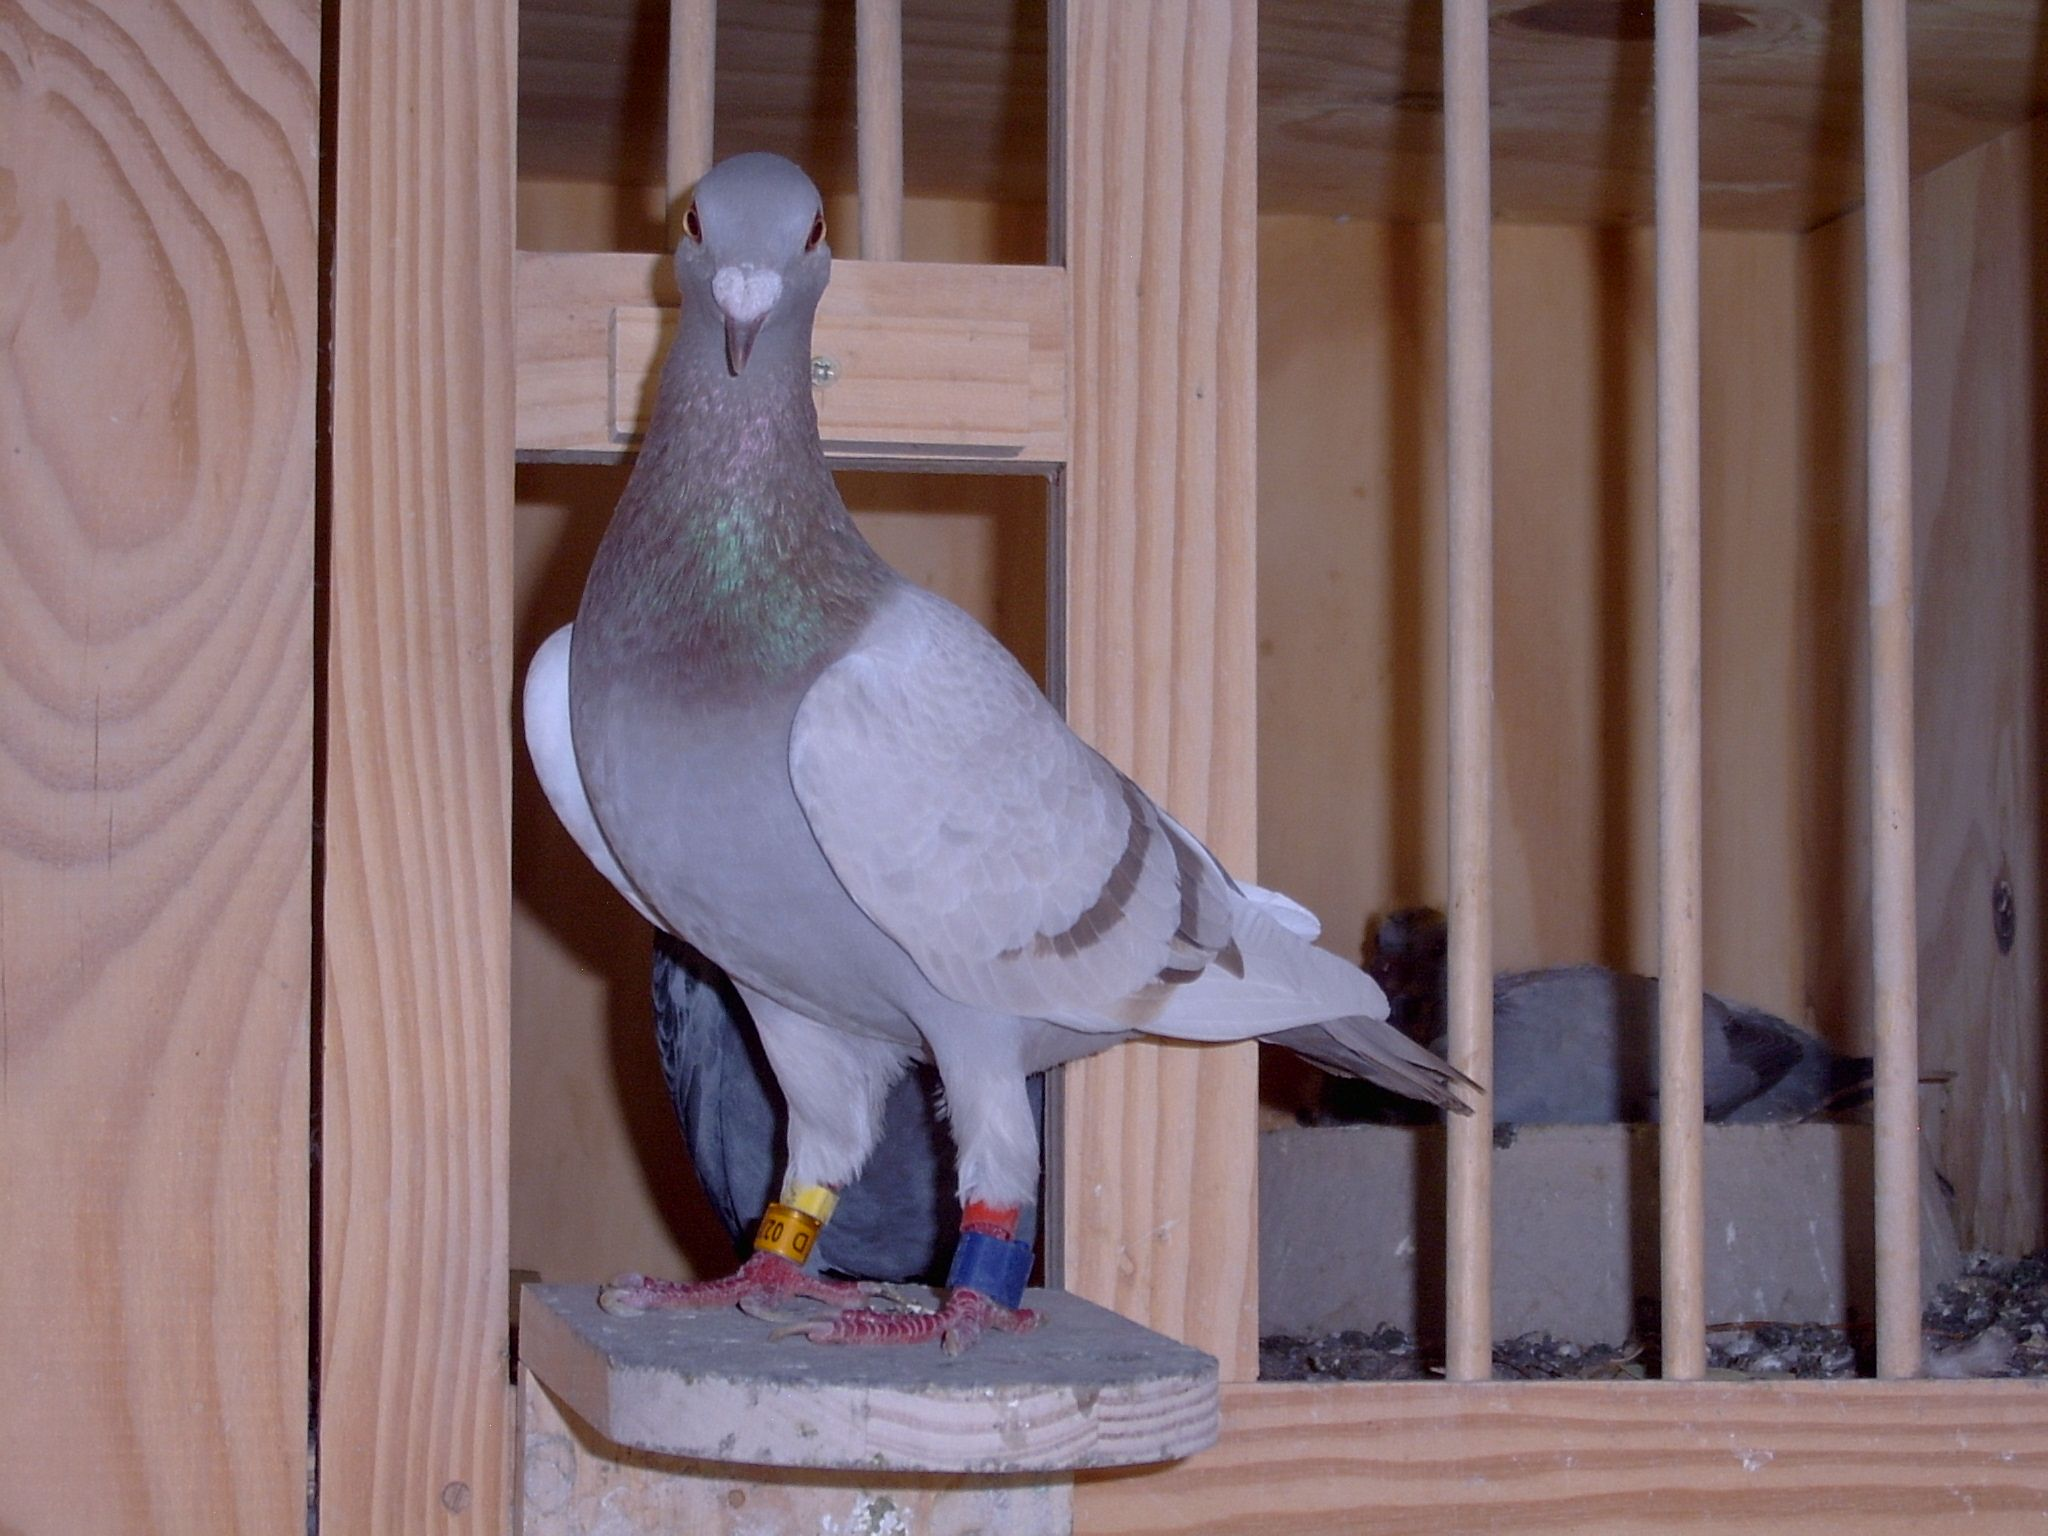 This is one of the racing pigeons of Ian Adriaanse from Paarl, South Africa. Visit www.pigeoninflight.com for more about pigeon racing.